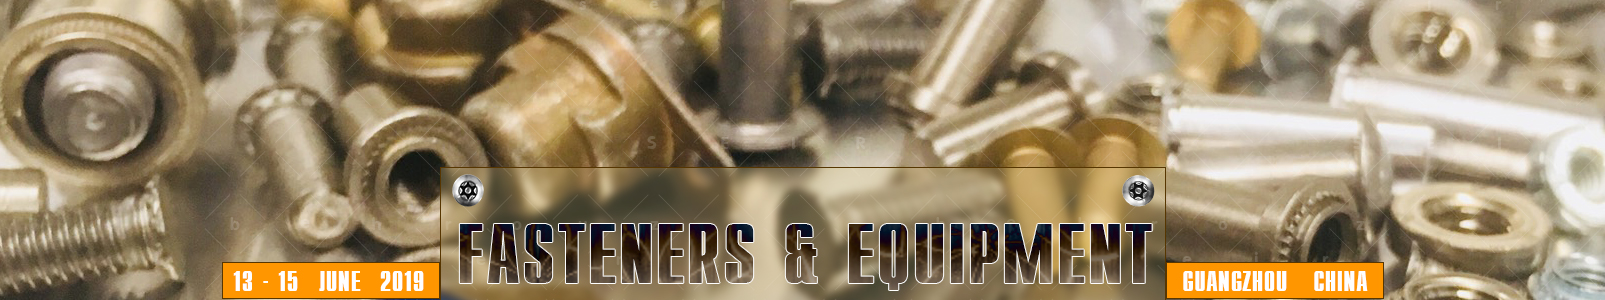 fastener-&-equipments-Header-بهروزسیر